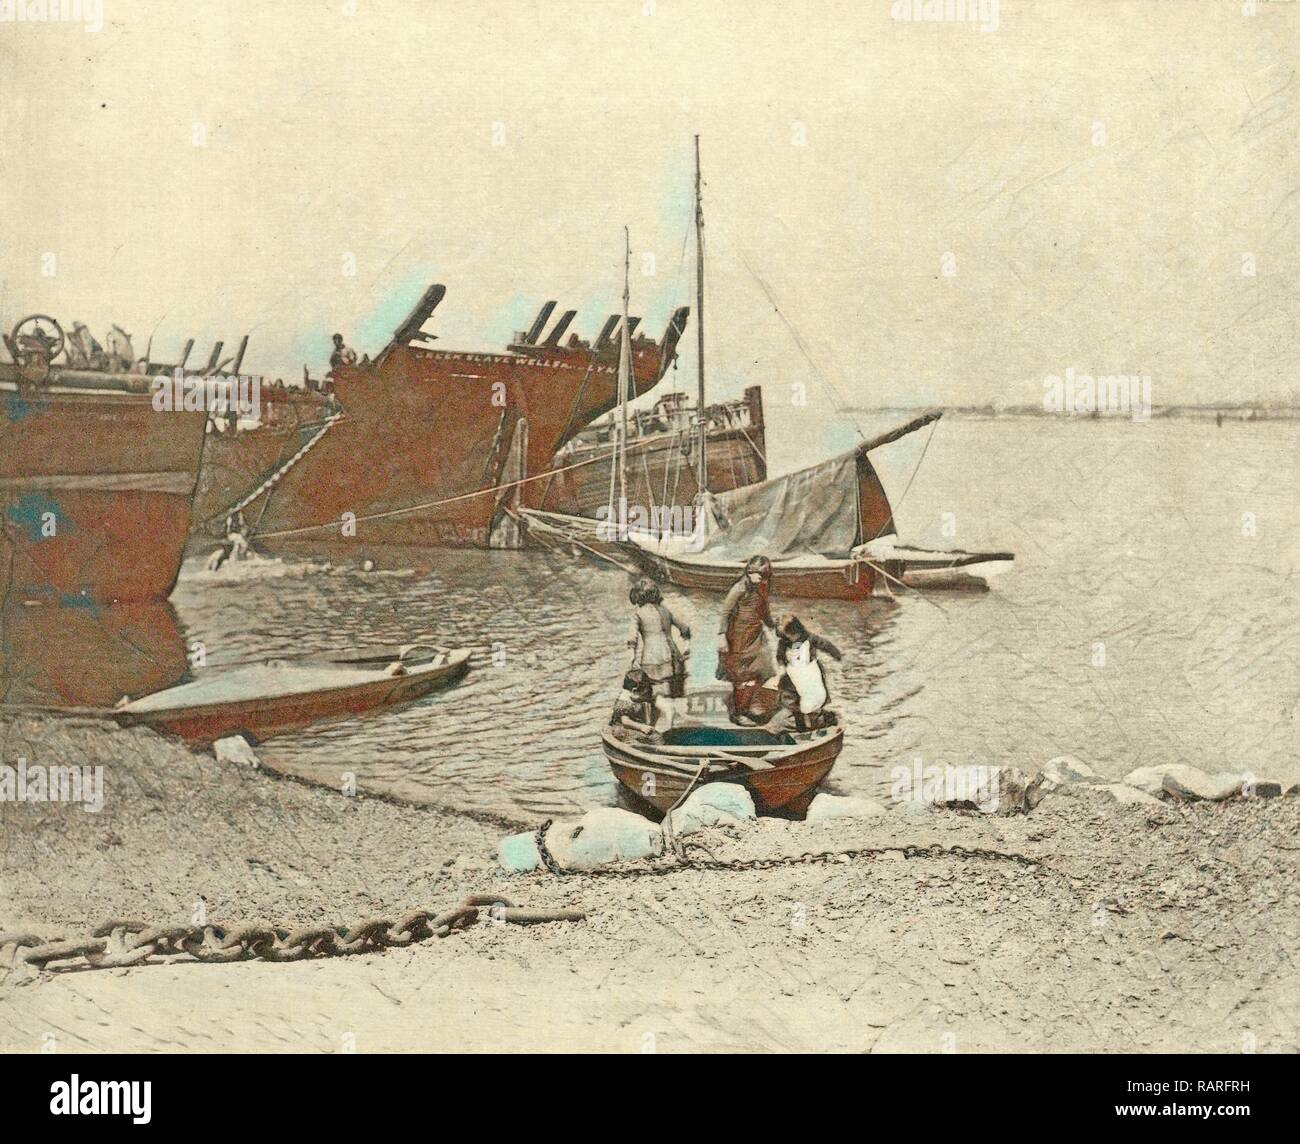 dismantled ships, attributed to Peter Henry Emerson, 1887 - 1890. Reimagined by Gibon. Classic art with a modern reimagined - Stock Image